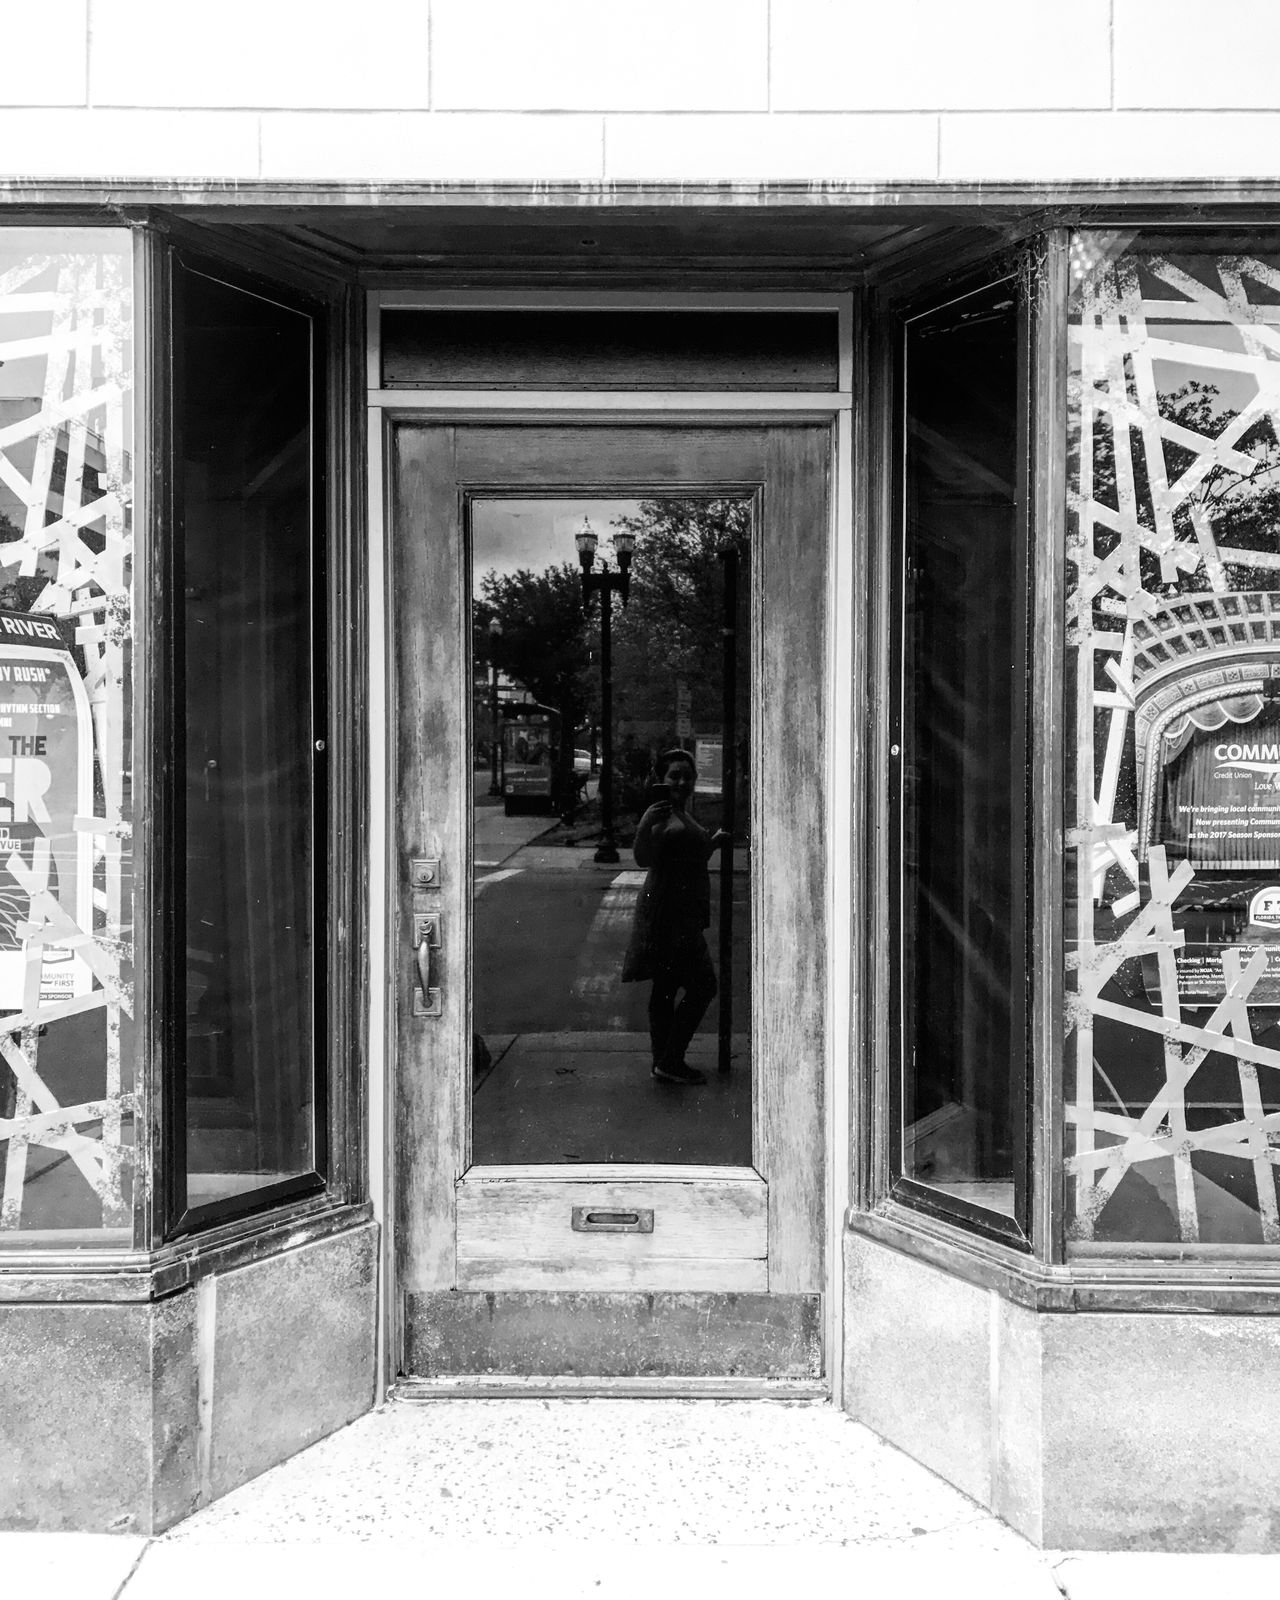 Reflections And Shadows Refelection  Windows Florida Theatre Bnw_society Bnw_captures Bnw_collection Bnw Bnw Photography Downtown Jax Dtjax Exploring Jacksonville Florida Portraits Self Portrait EyeEmNewHere